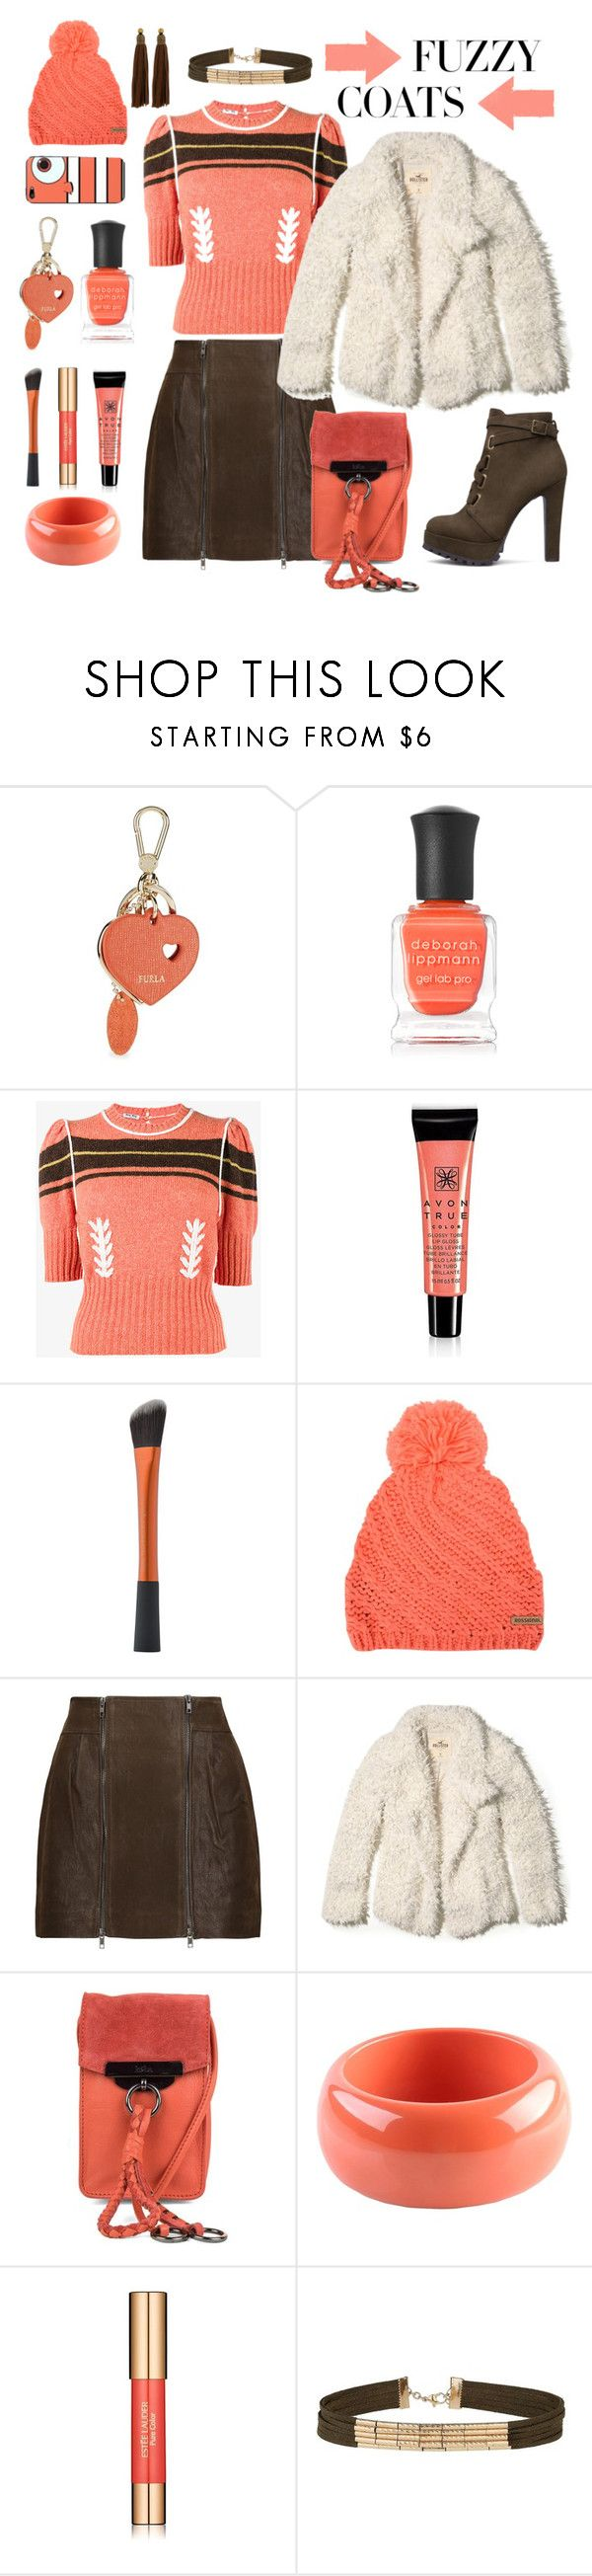 """Keep it Cozy:  Fuzzy Coats"" by tjtever ❤ liked on Polyvore featuring Furla, Deborah Lippmann, Miu Miu, Avon, Rossignol, Melissa Odabash, Hollister Co., Kooba, Dsquared2 and Estée Lauder"